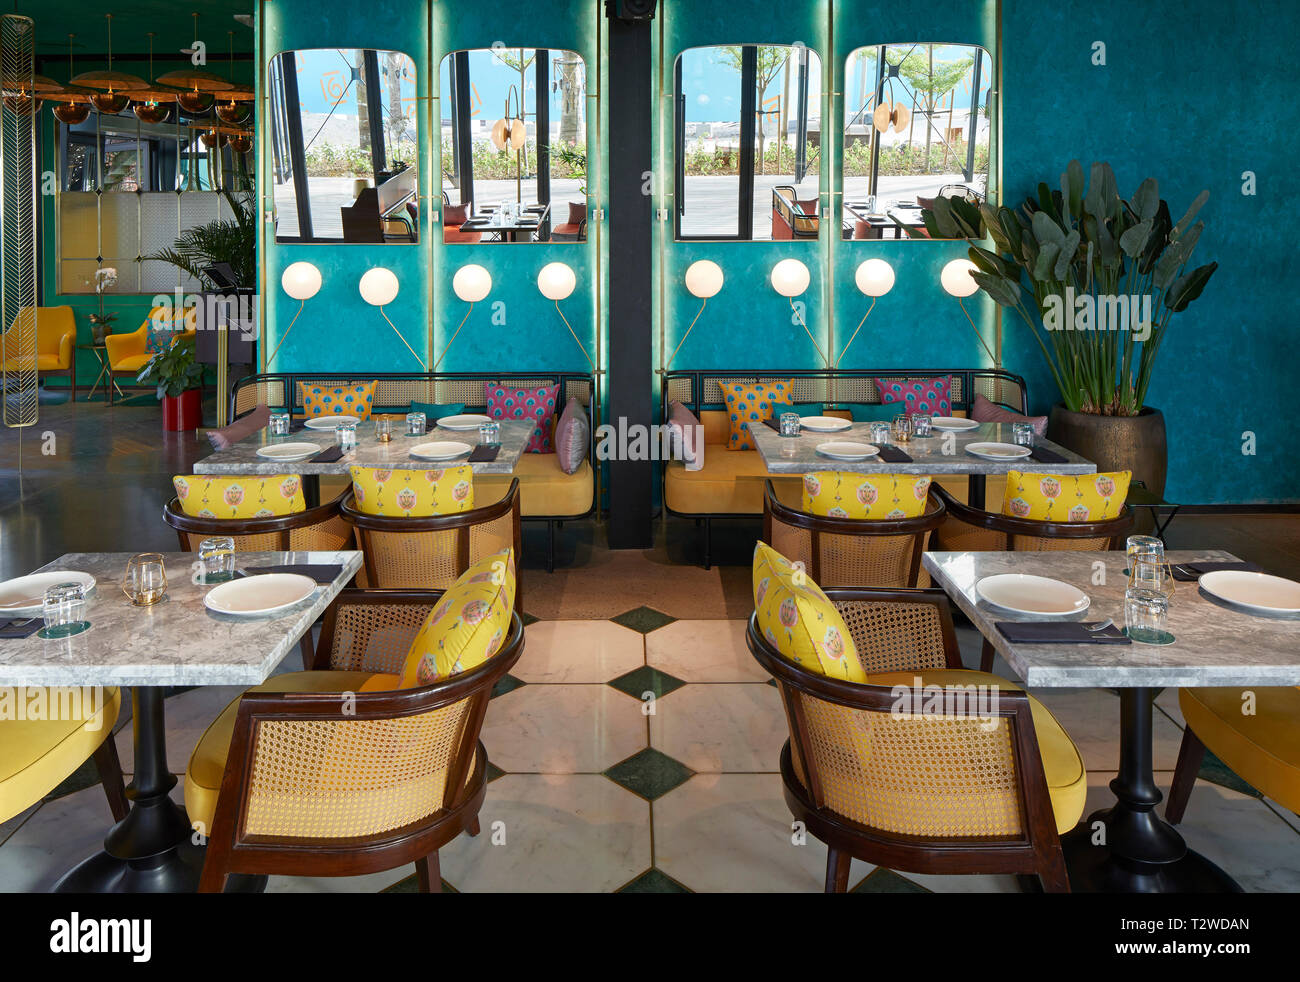 Page 2 Dining Out Dubai High Resolution Stock Photography And Images Alamy